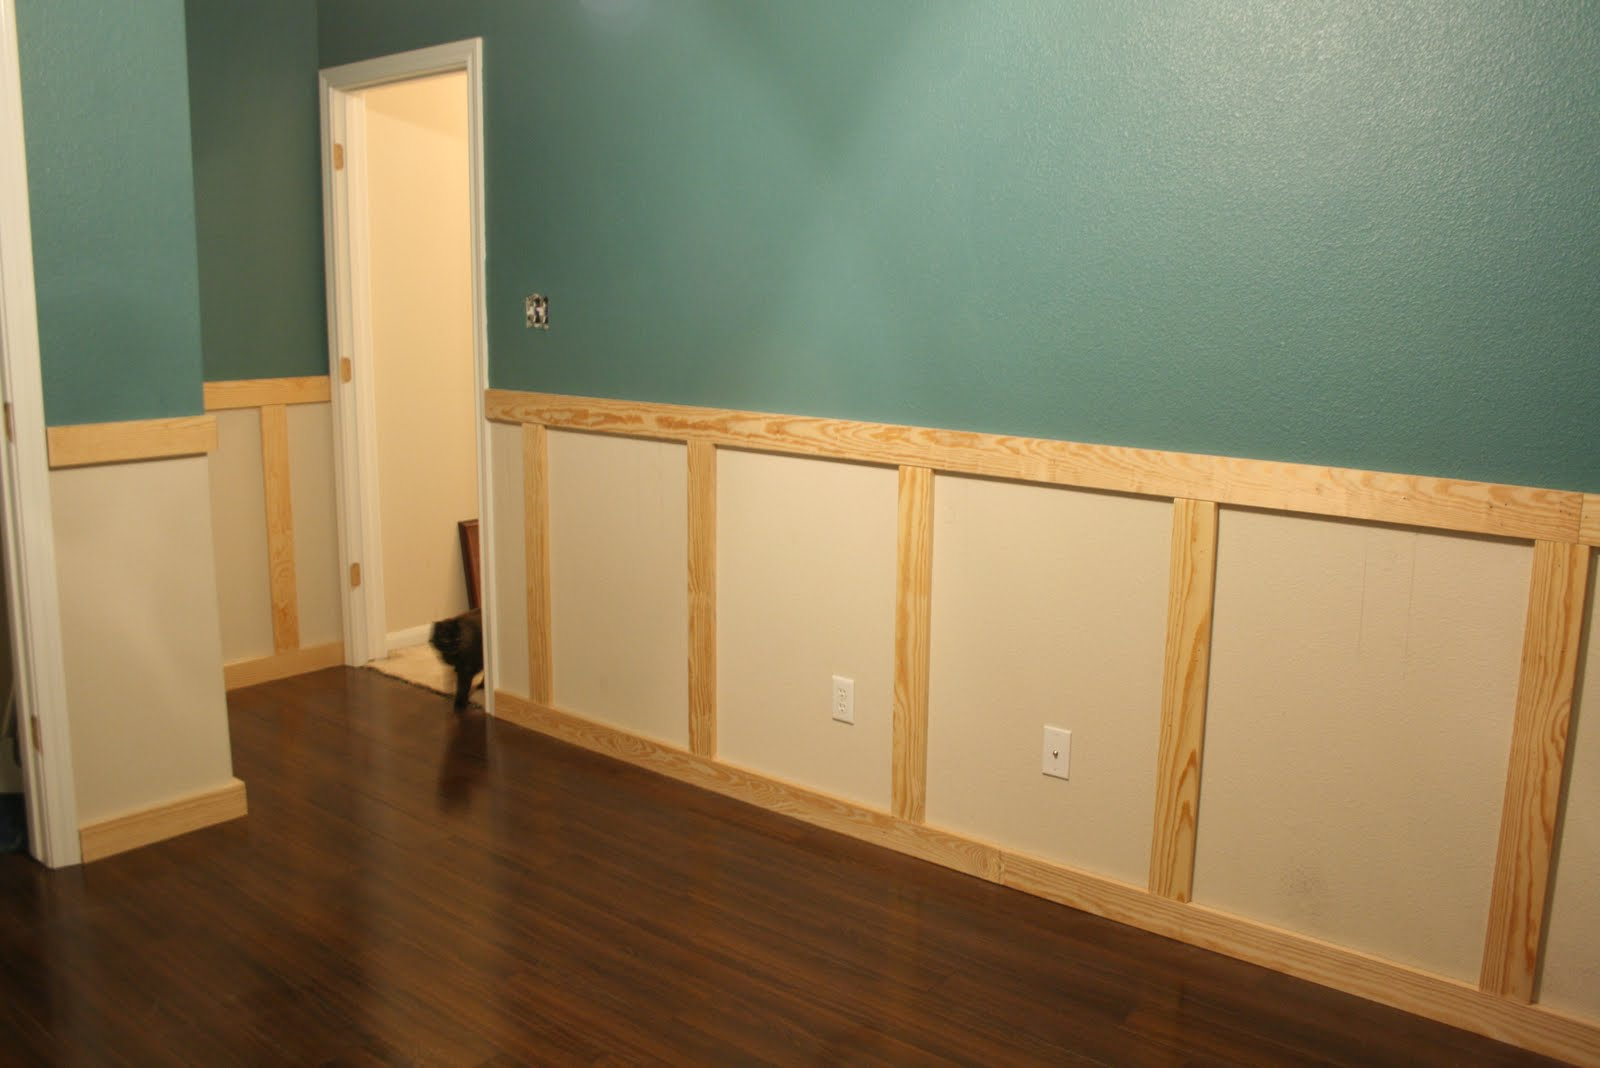 How To Make Your Home Green Best With Home Depot Wainscoting Ideas Images